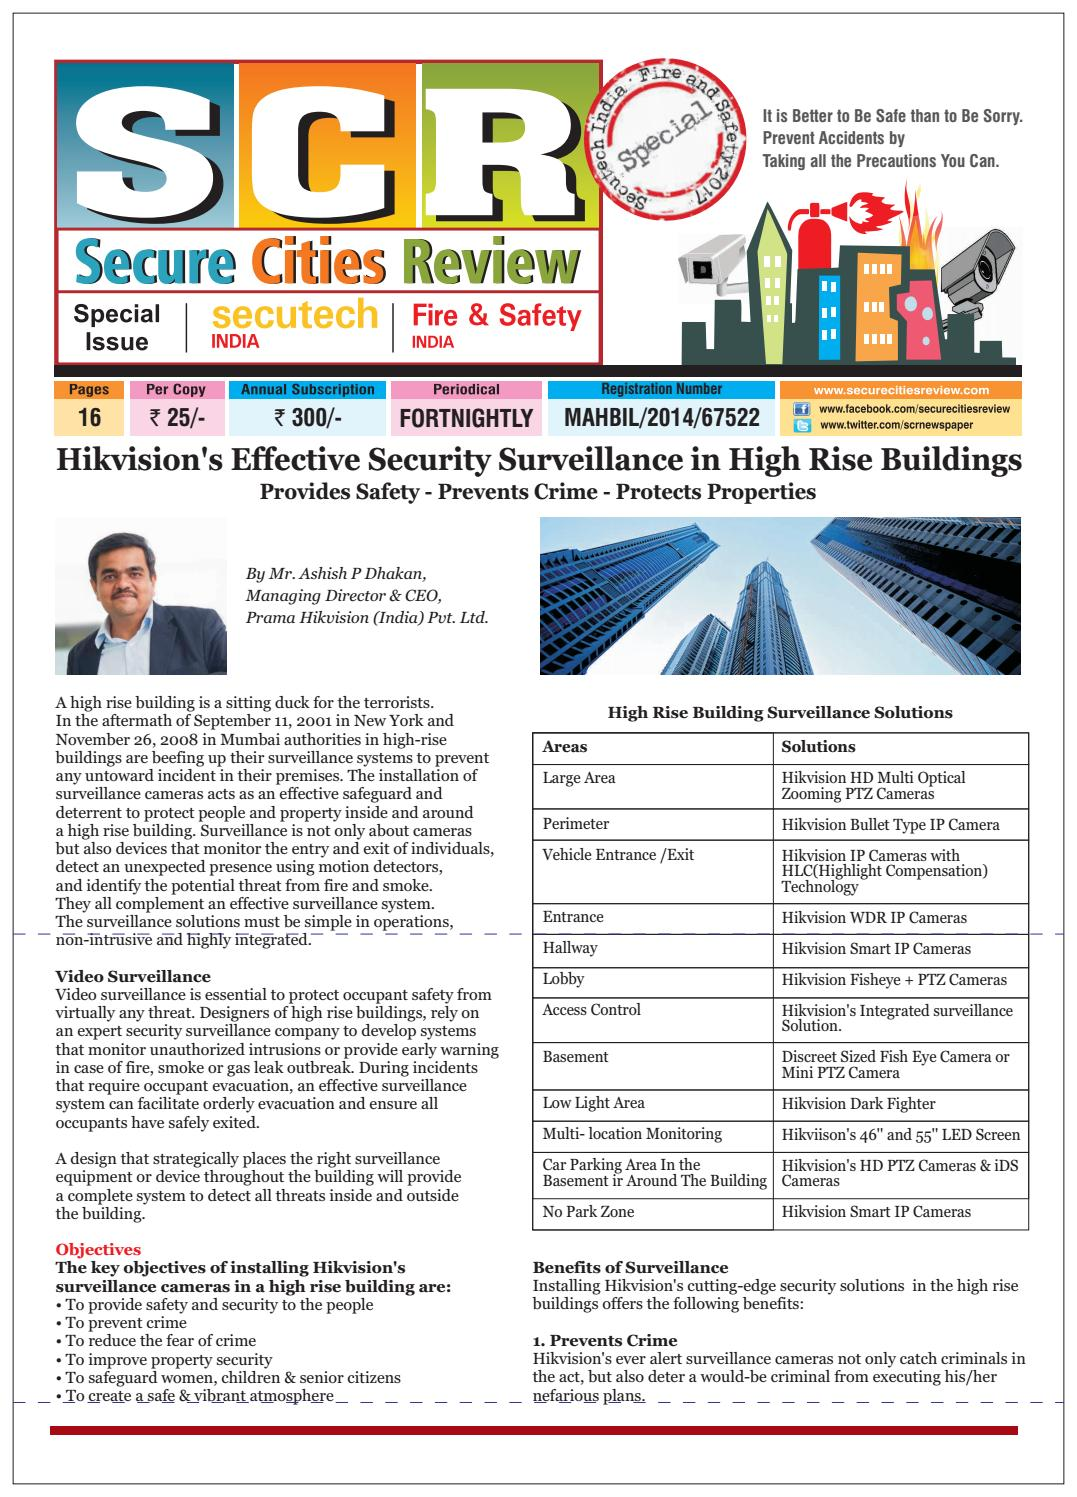 SECURE CITIES REVIEW NEWSPAPER